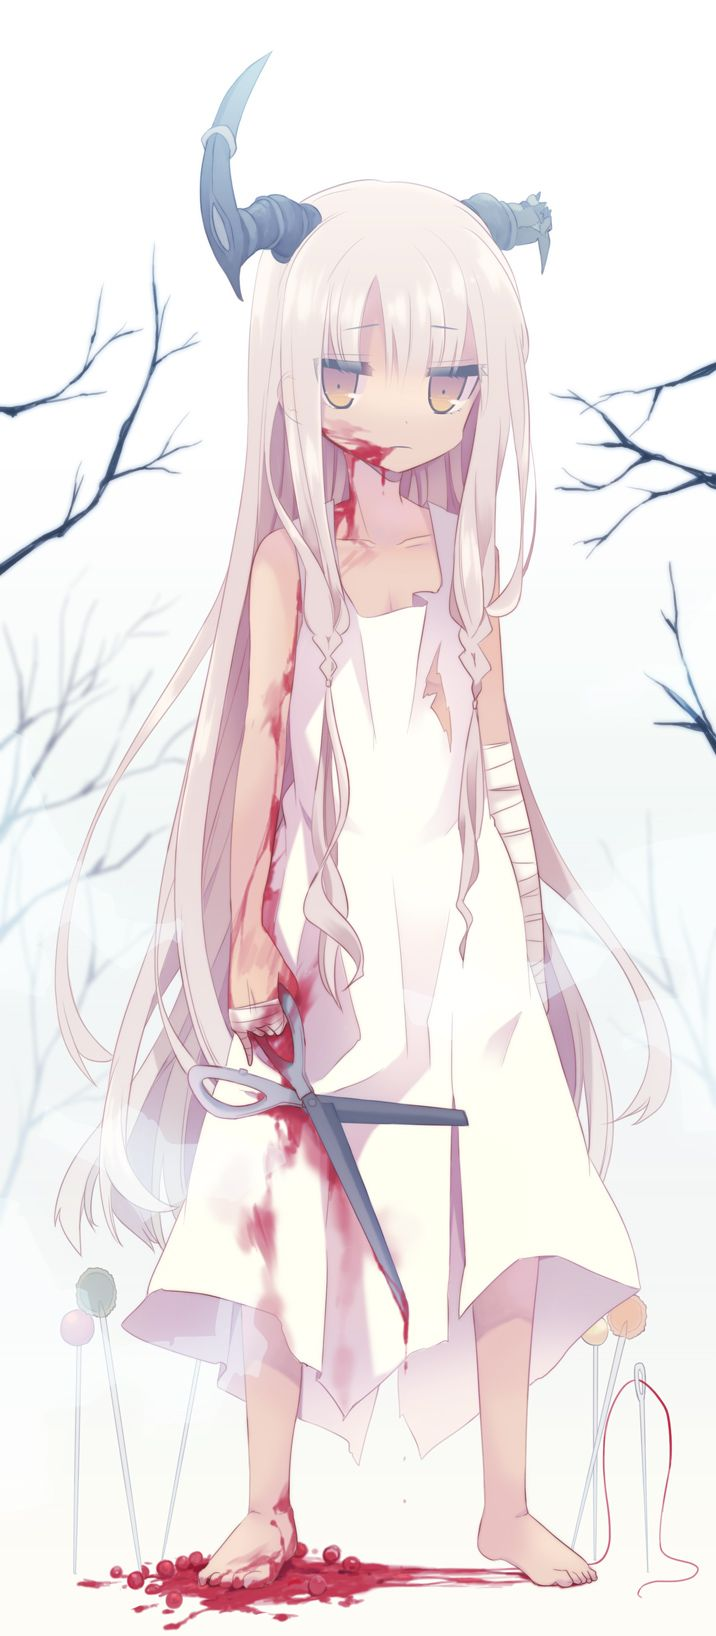 anime face bandage: 100 Best Browsed 55 Images On Pinterest